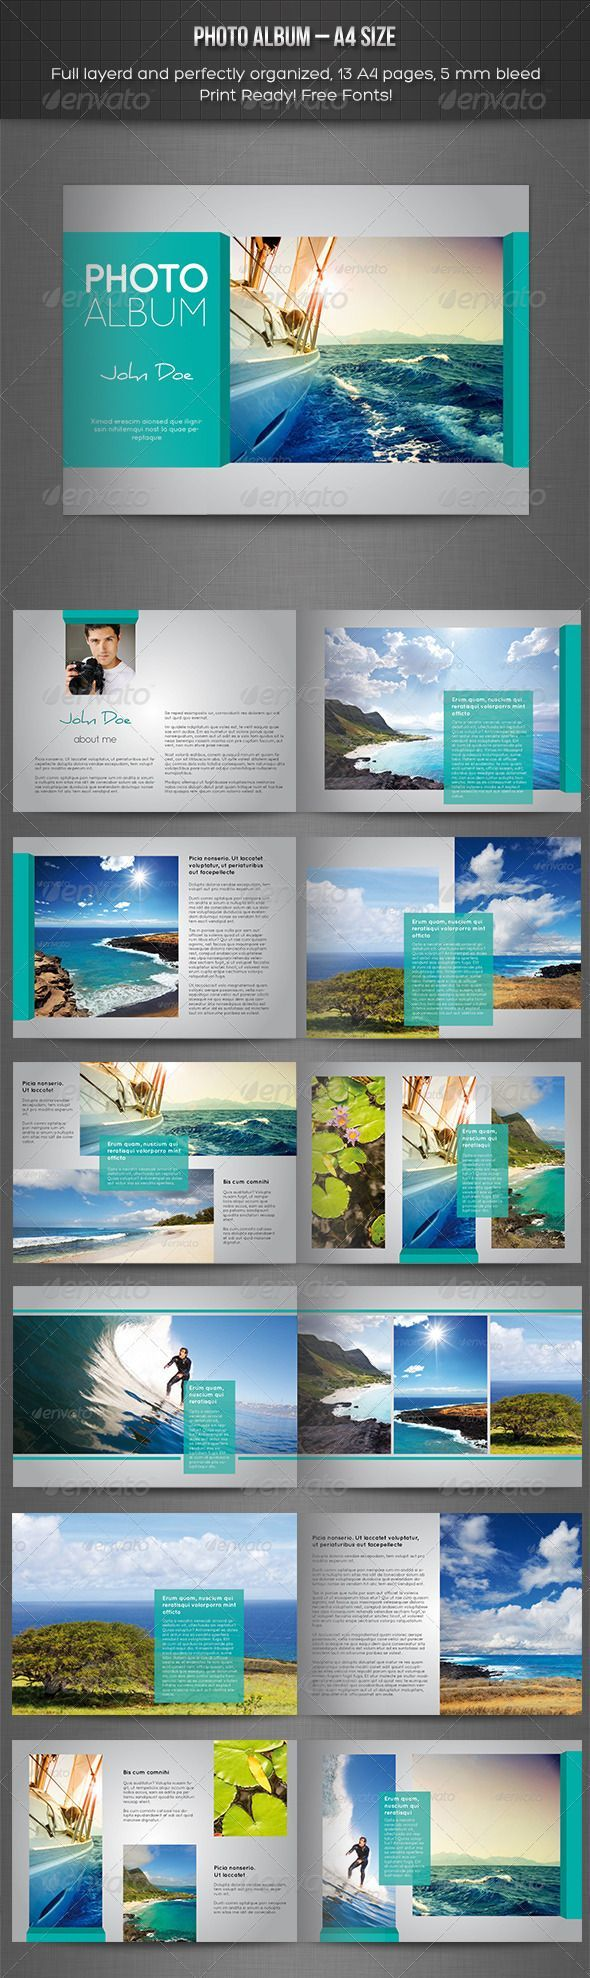 Photo Album – Landscape Template - GraphicRiver Item for Sale Architectural Landscape Design